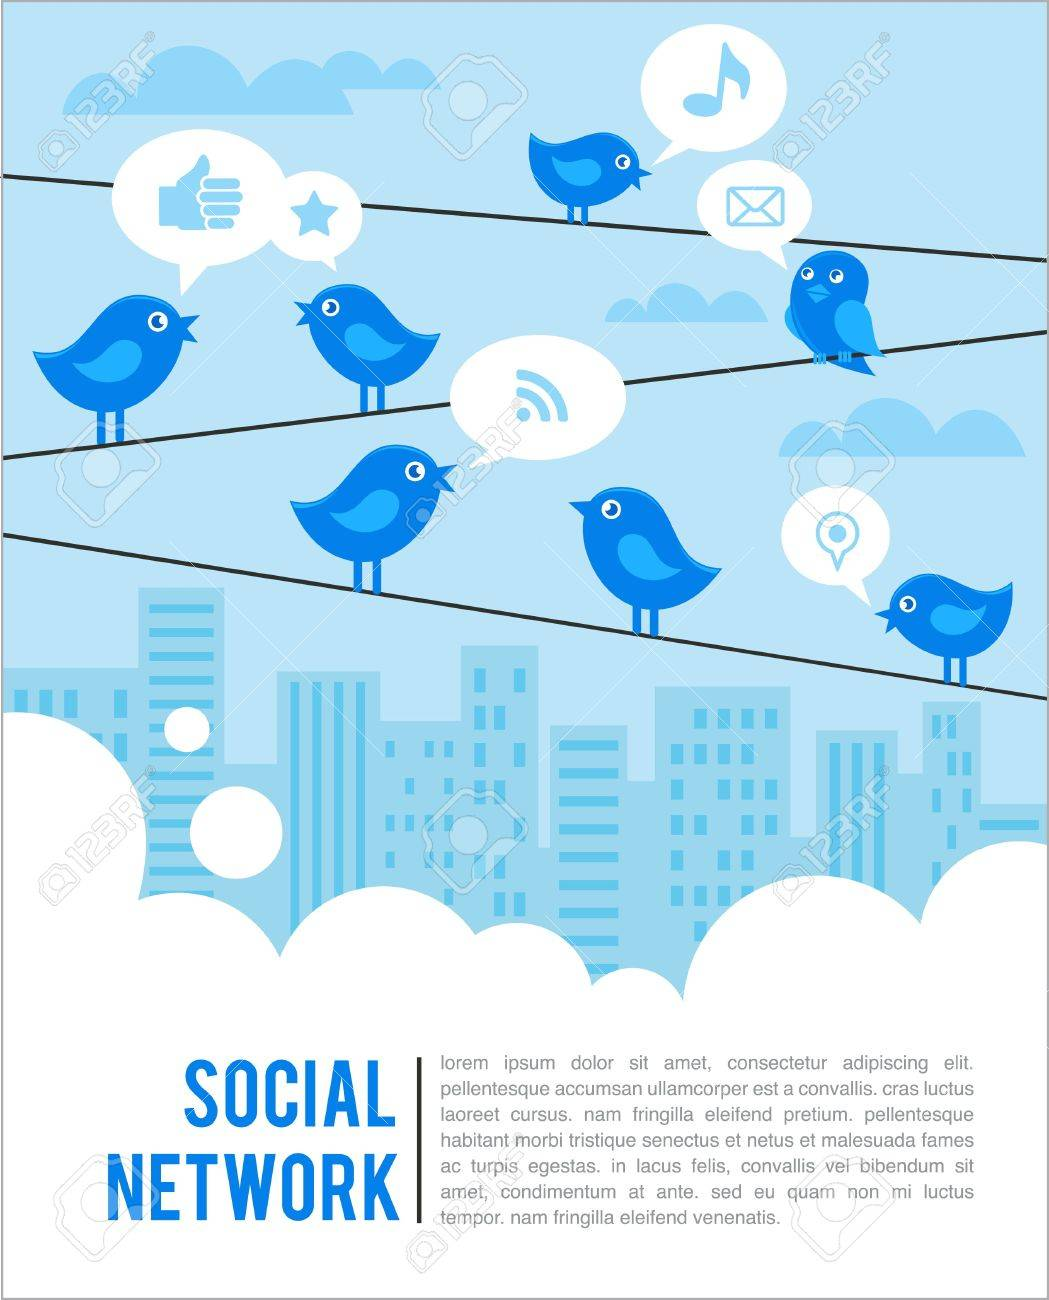 Social network background with birds and icons Stock Vector - 9842782